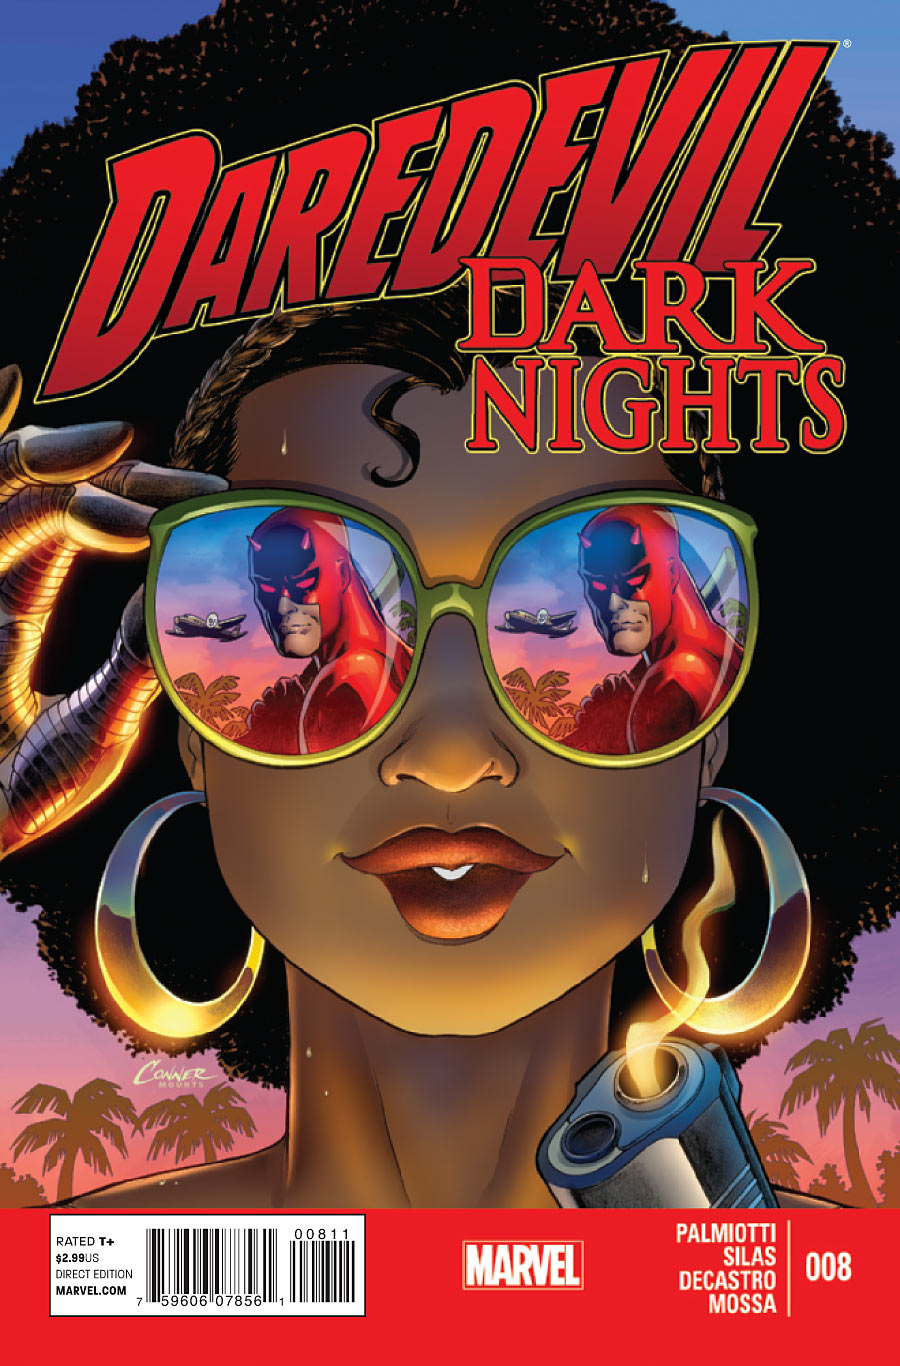 Daredevil: Dark Nights Vol 1 8